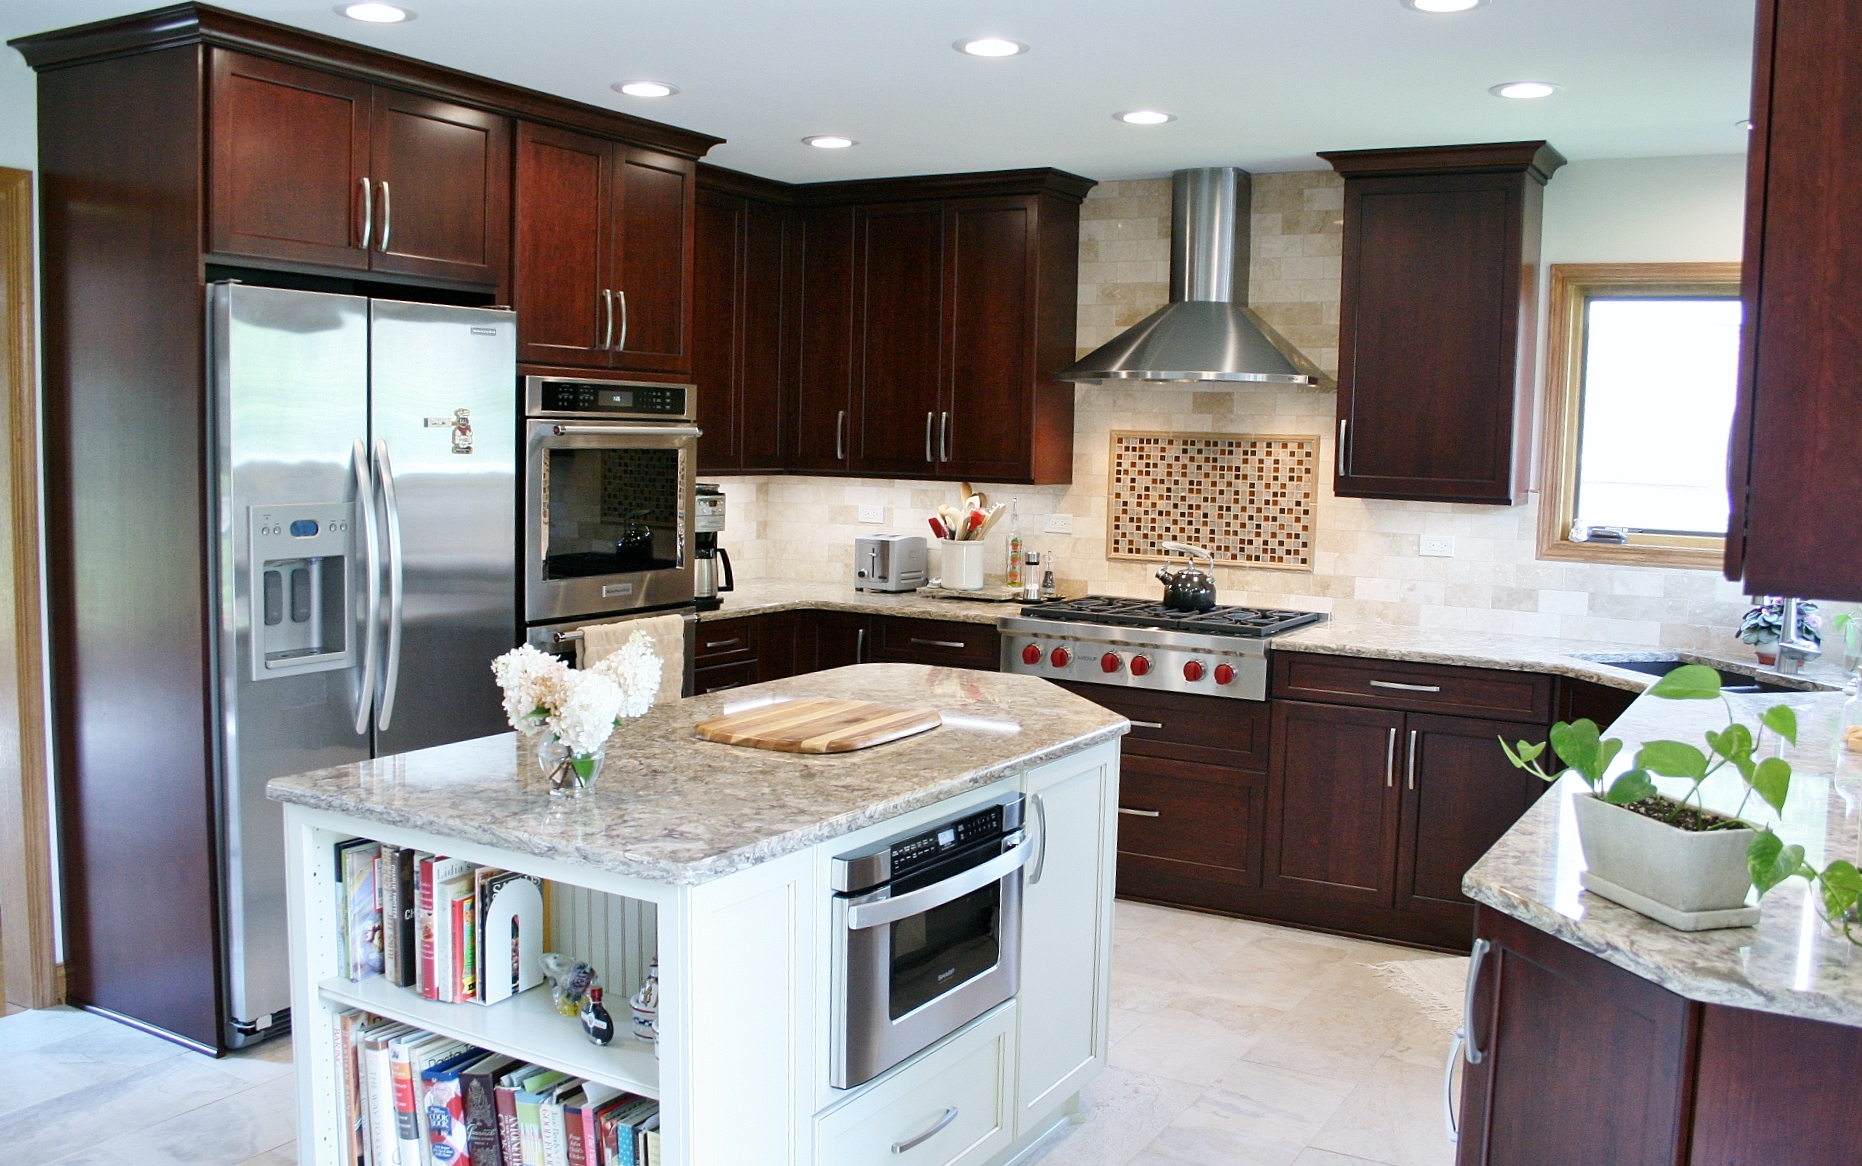 Park Ridge Holiday Kitchen Cabinetry Cambria Counters Wolf Range Top  9 14 17 (